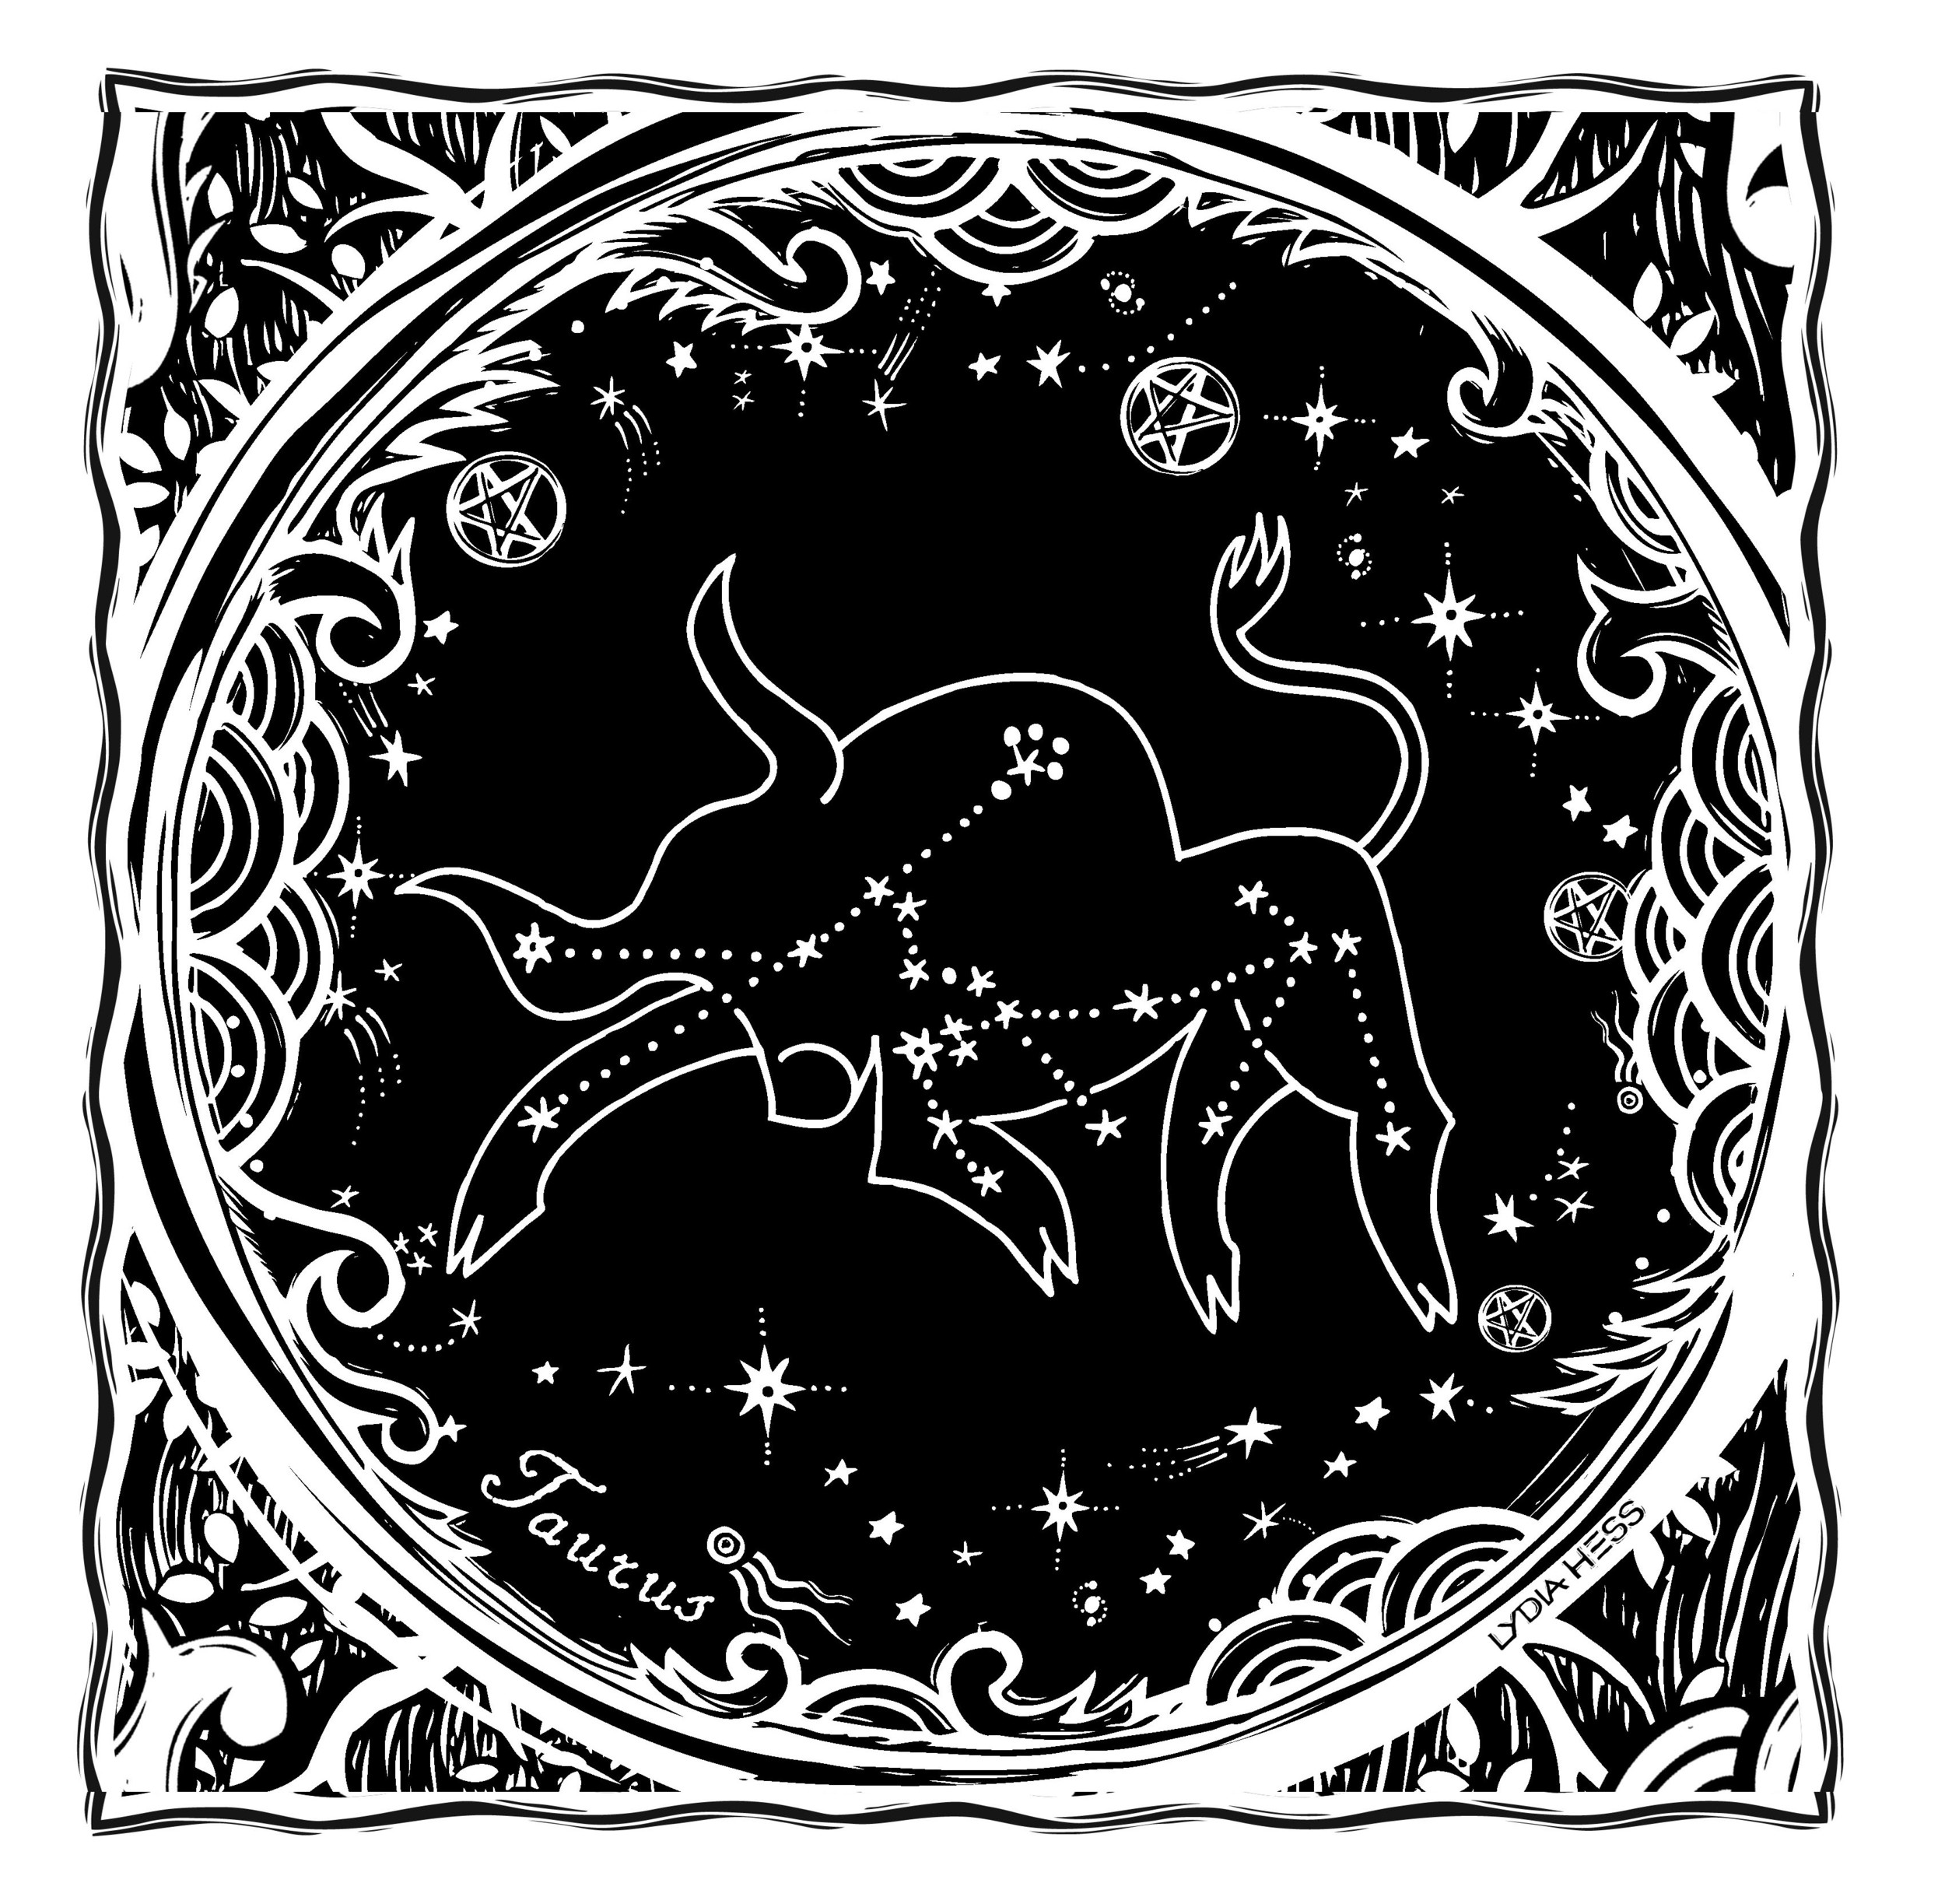 Taurus - from Sacred Heavens - Coloring books for the Soul